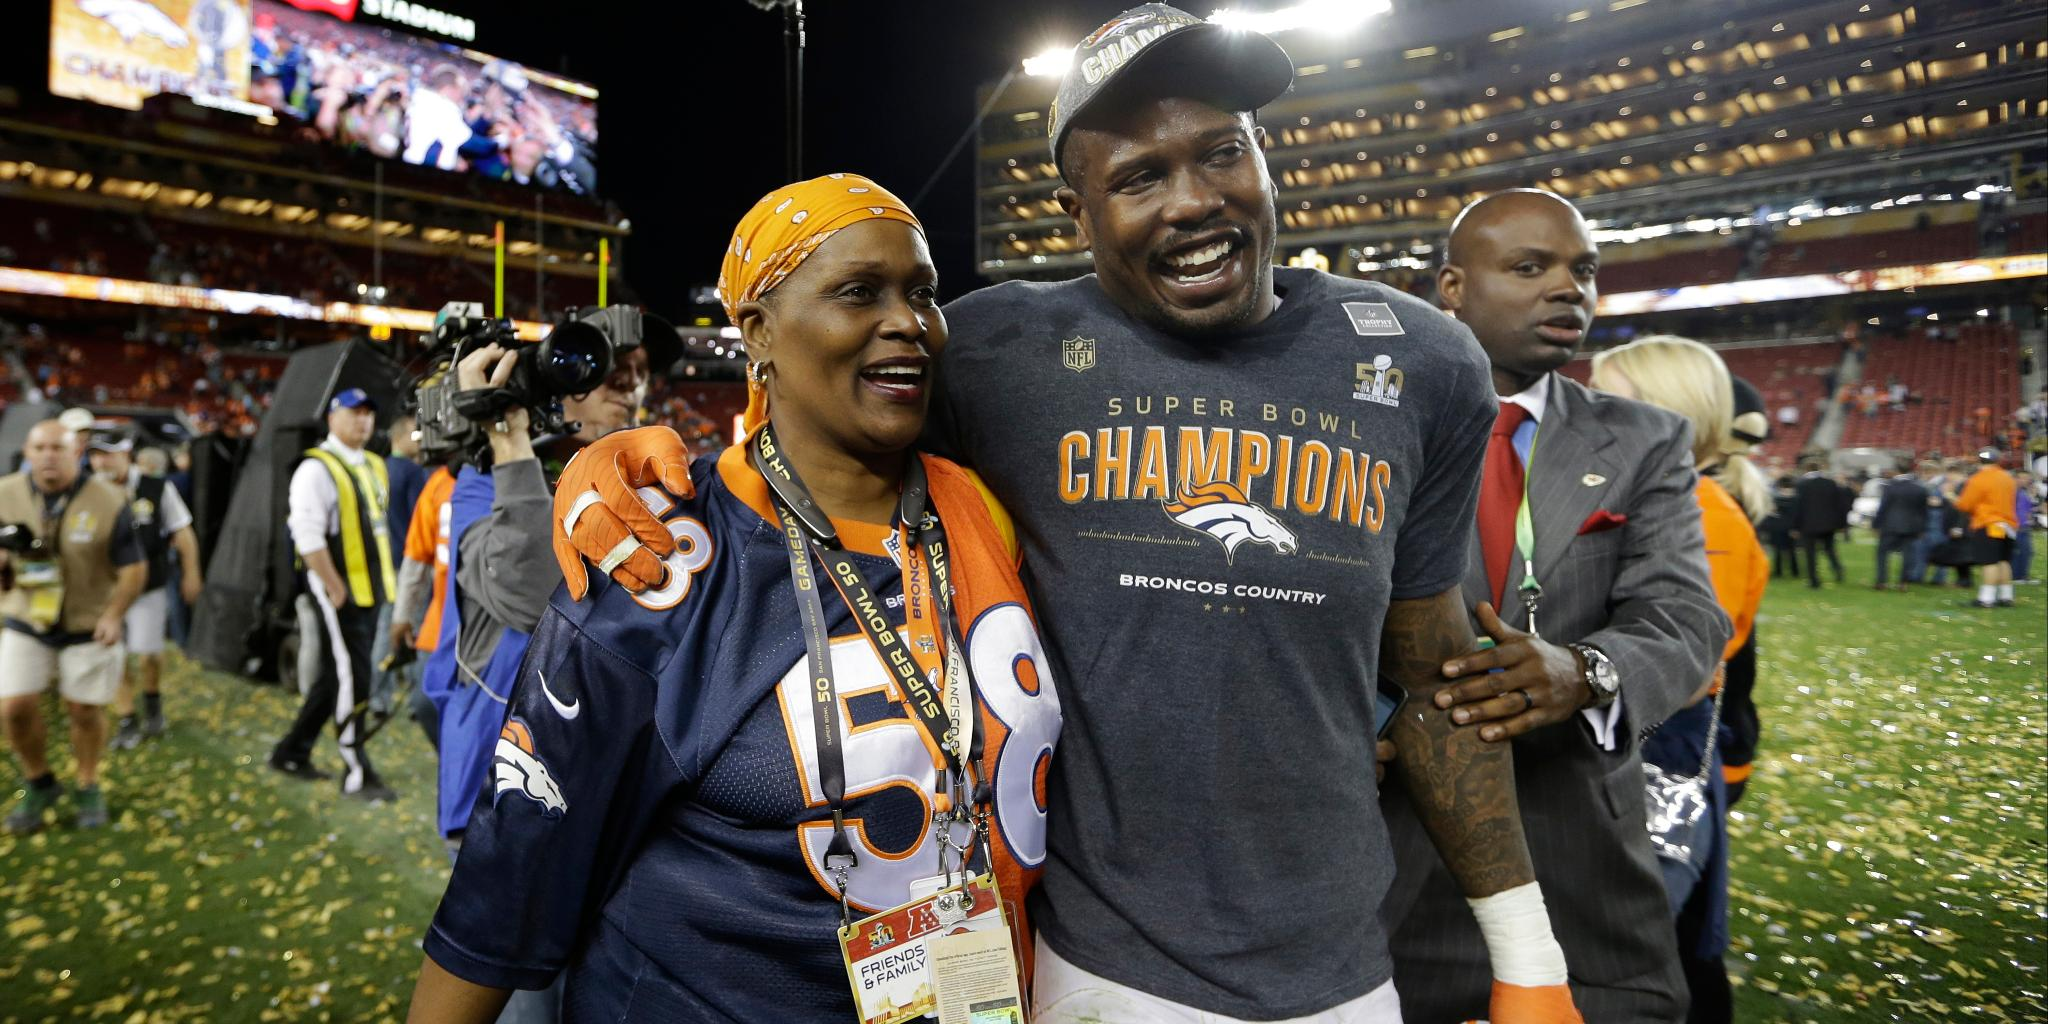 50 NFL players.  And the moms who supported their journey! https://t.co/axSJKbSEkX #HappyMothersDay https://t.co/ok9U66Loiq